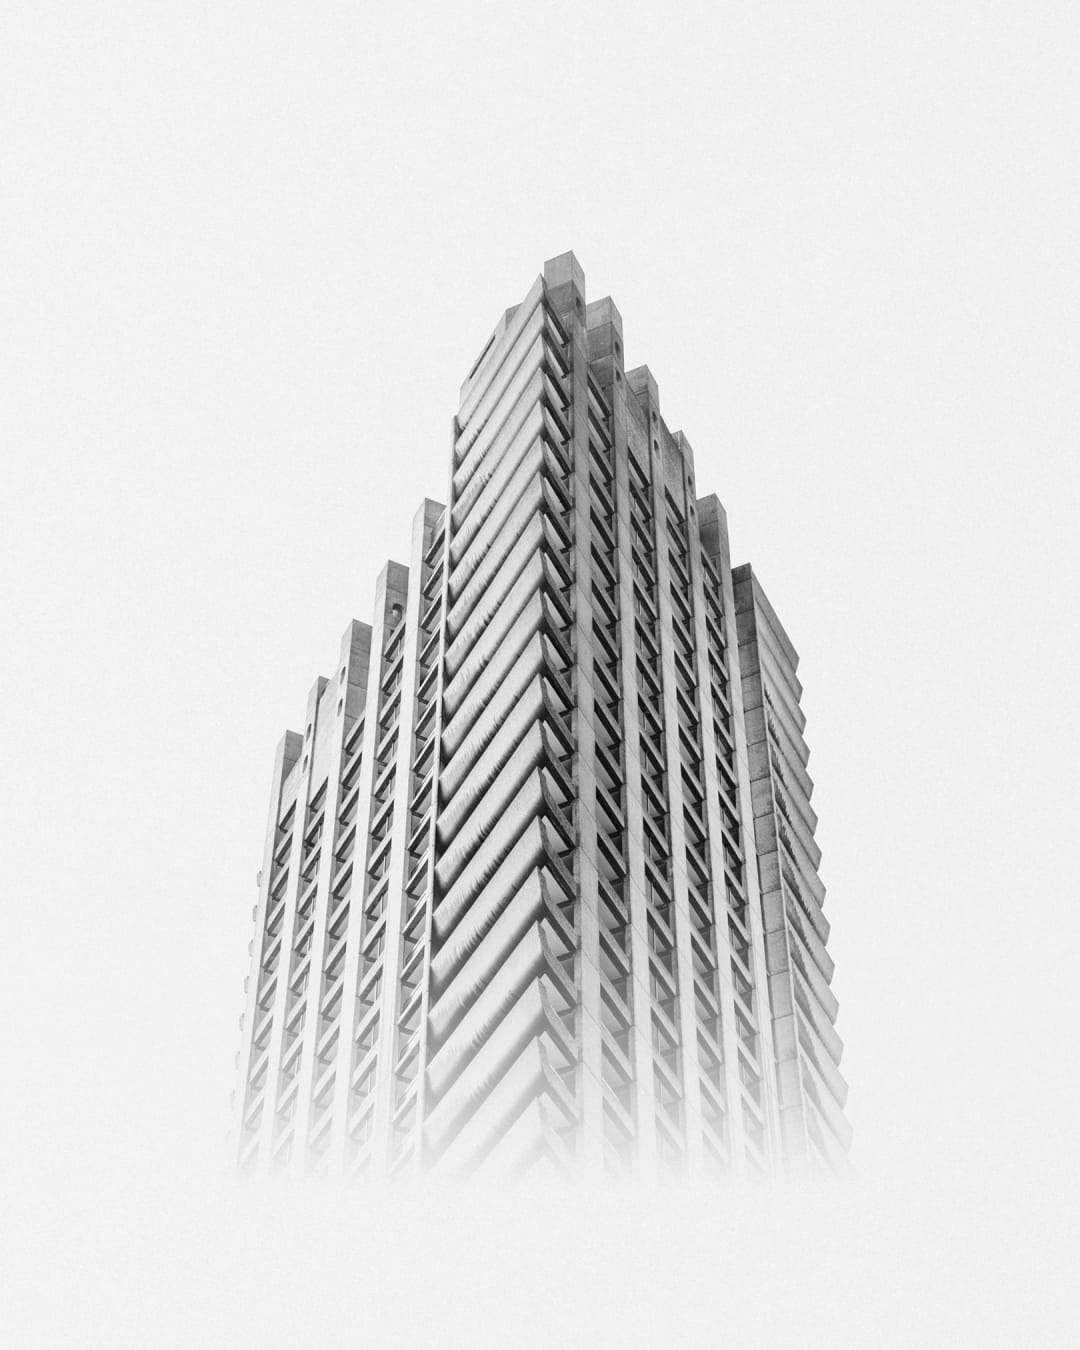 The Barbican Shakespeare Tower in London. Brutal architecture dystopian photograph